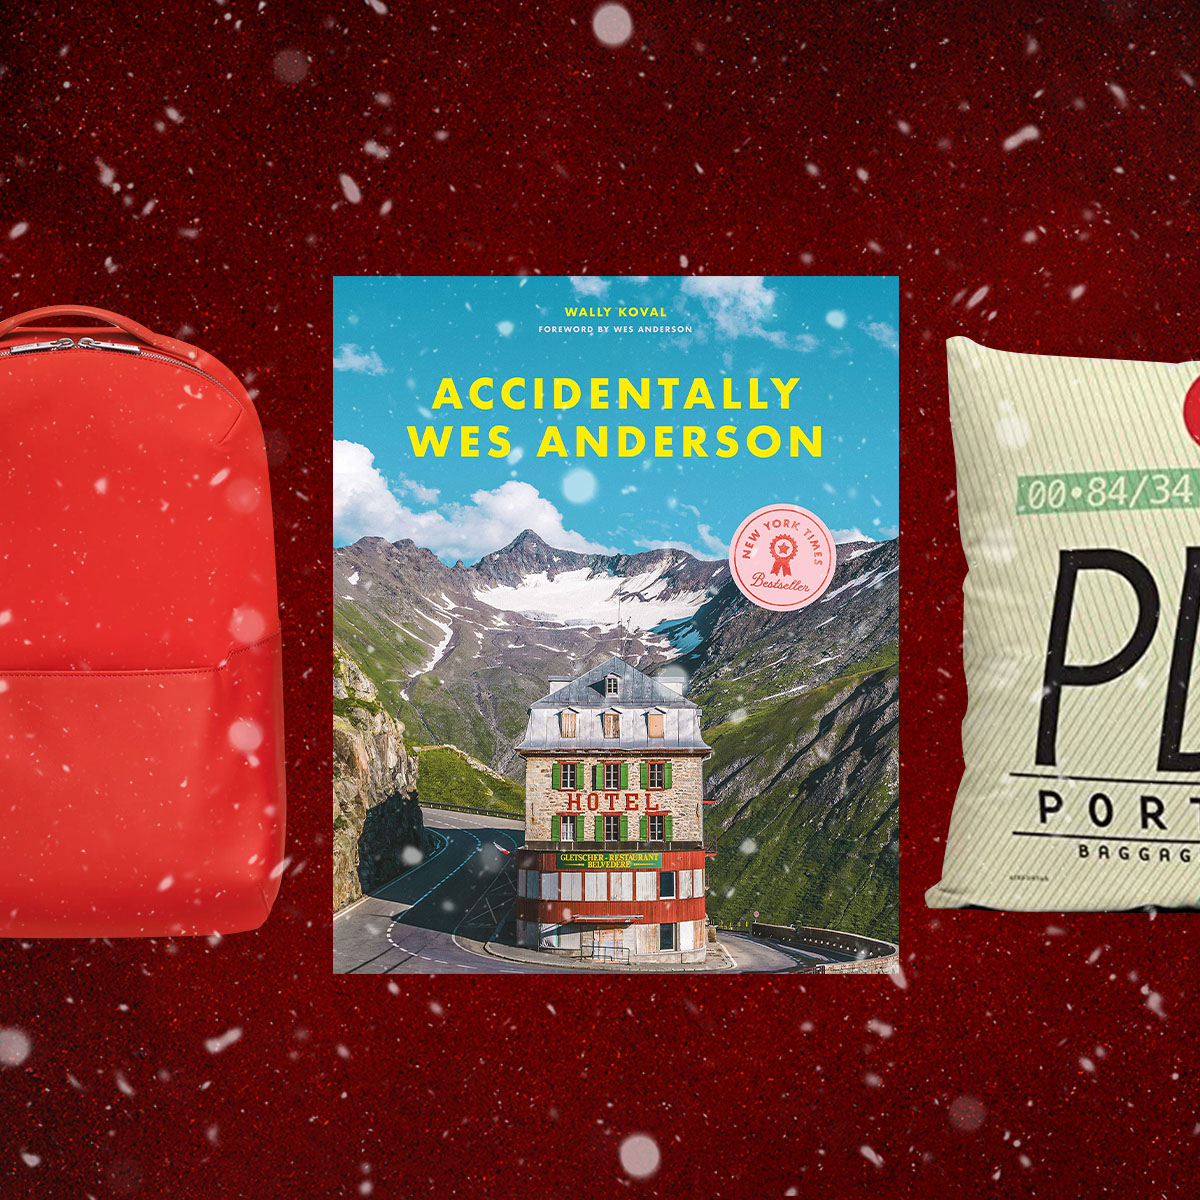 backpacks, wes anderson books, airport pillows